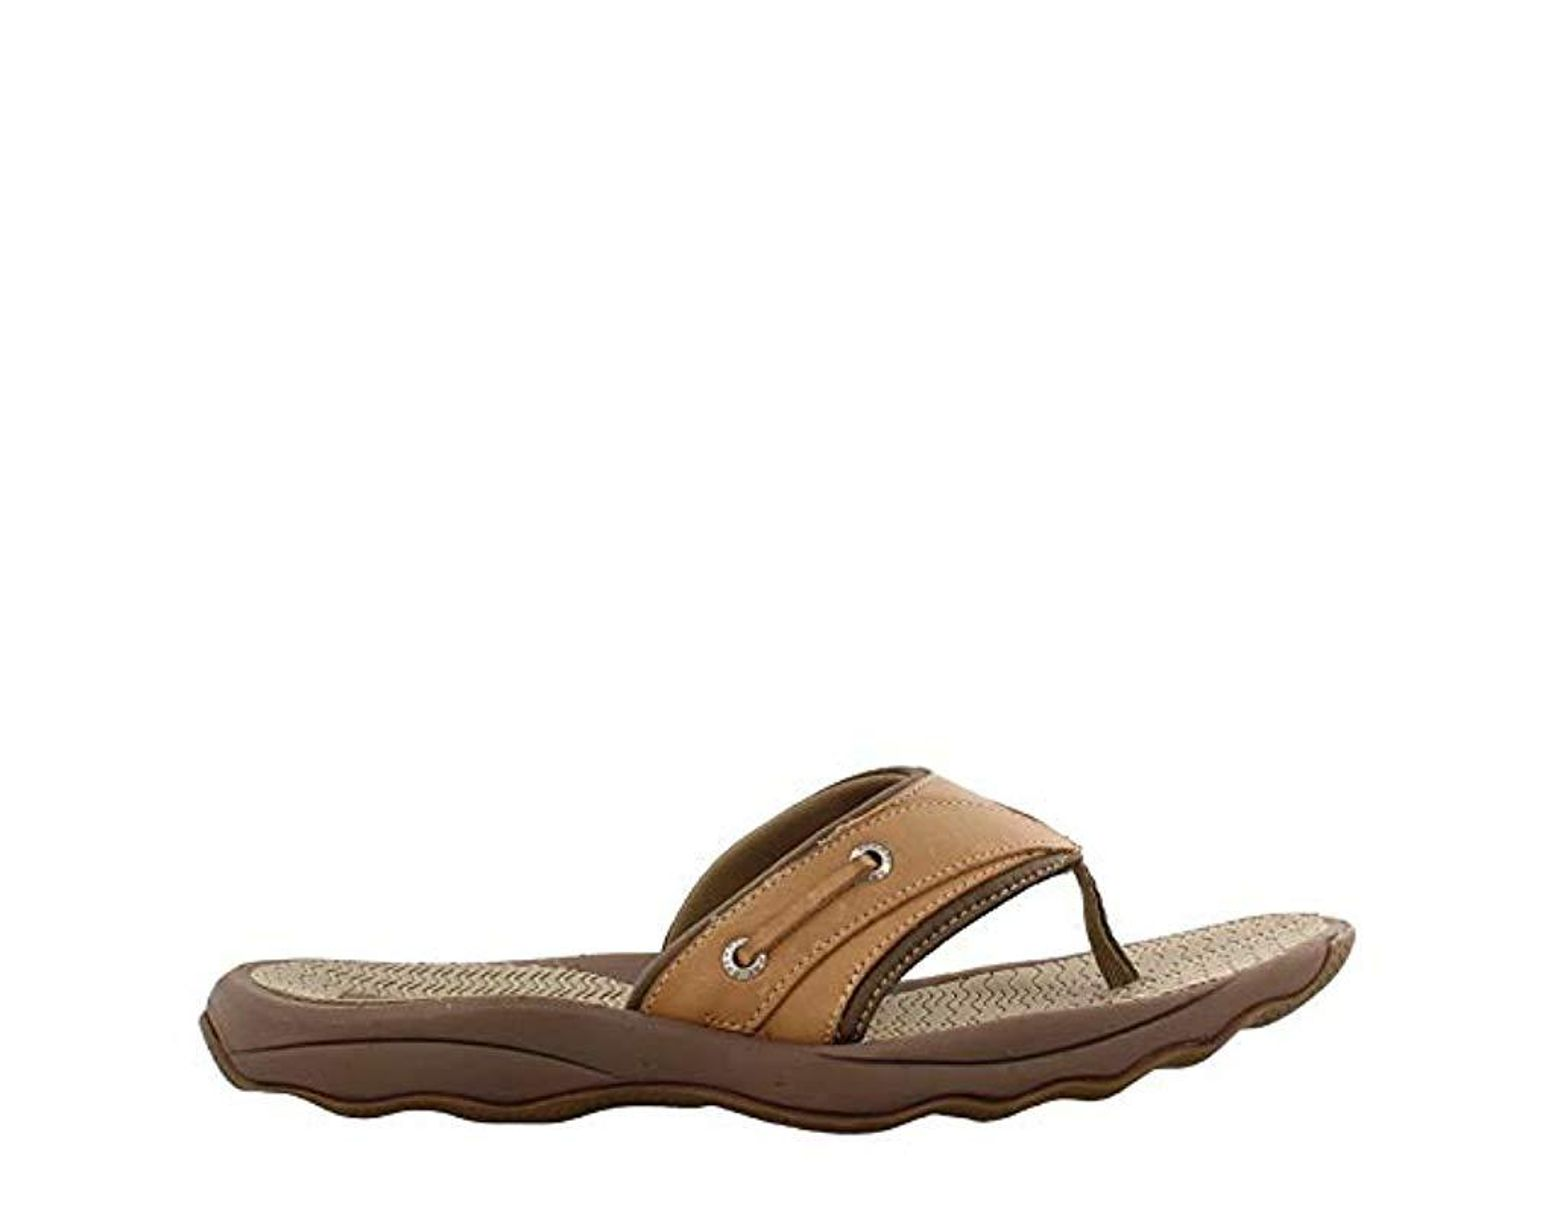 4b78de52733fb2 Sperry Top-Sider Top-sider Outer Banks Thong Sandal in Brown for Men - Lyst